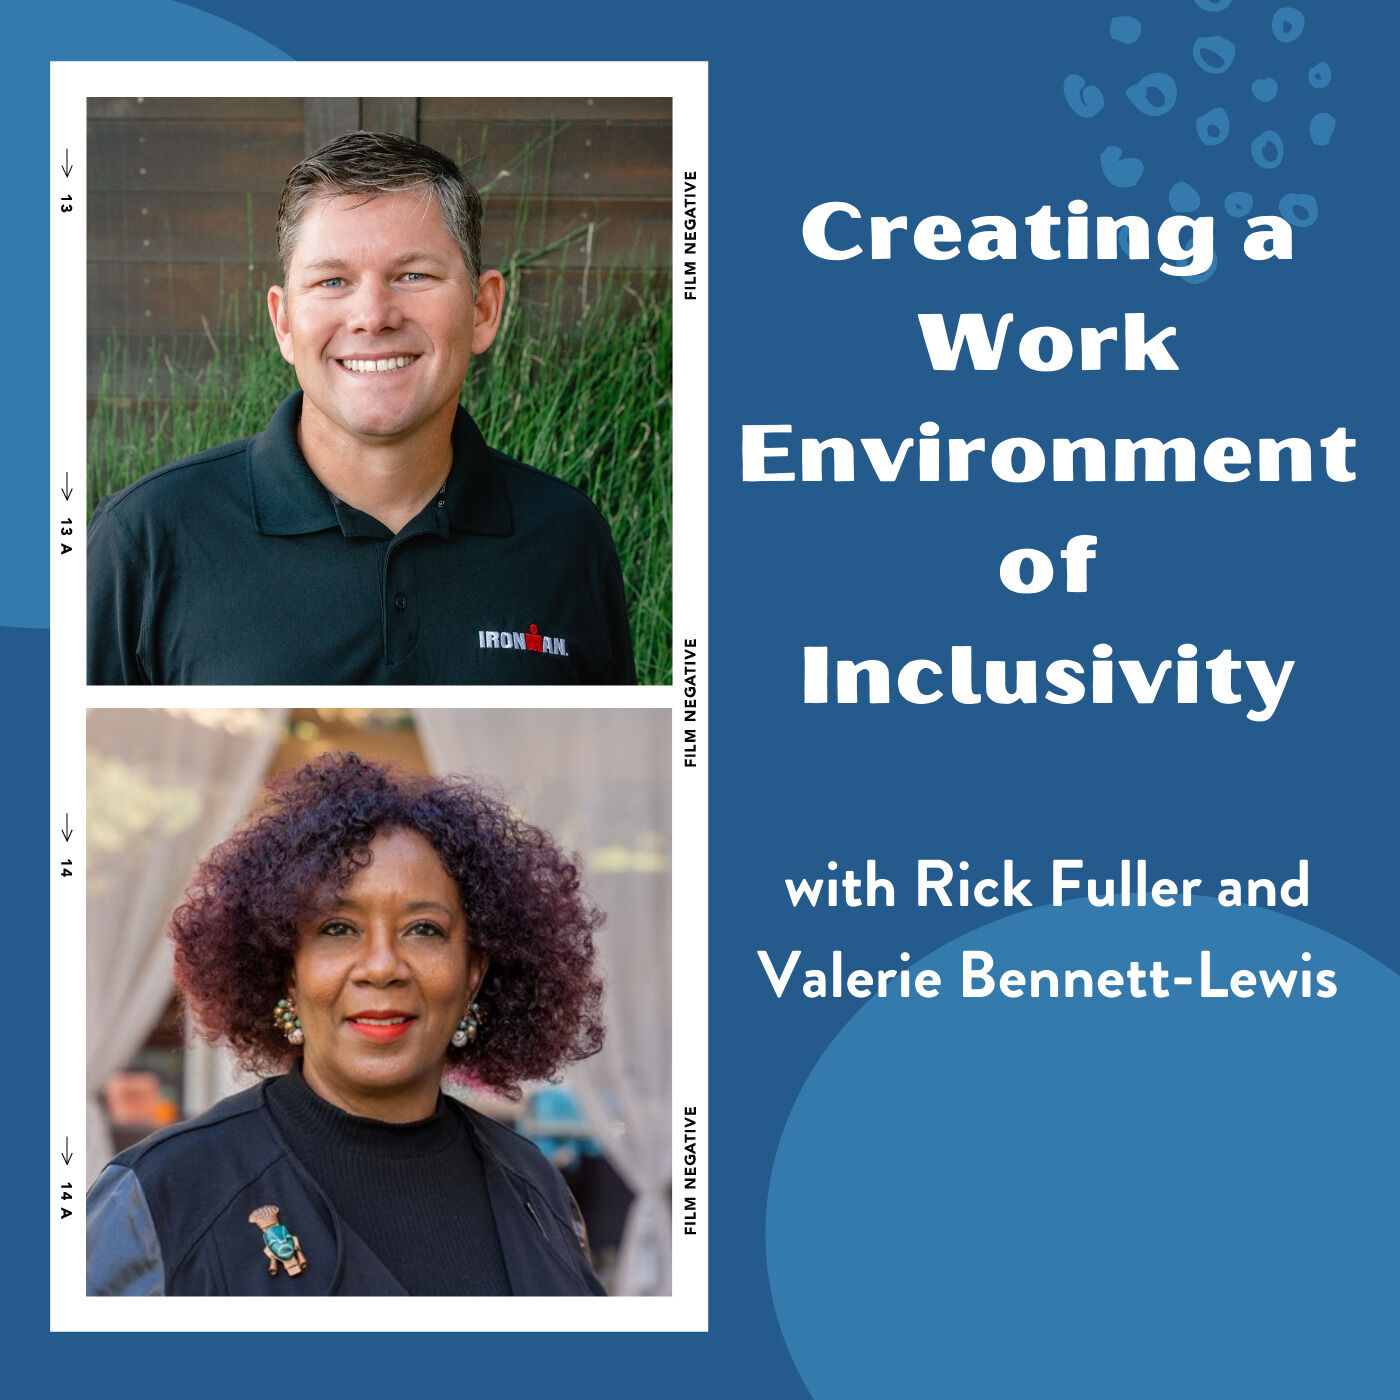 Creating a Work Environment of Inclusivity